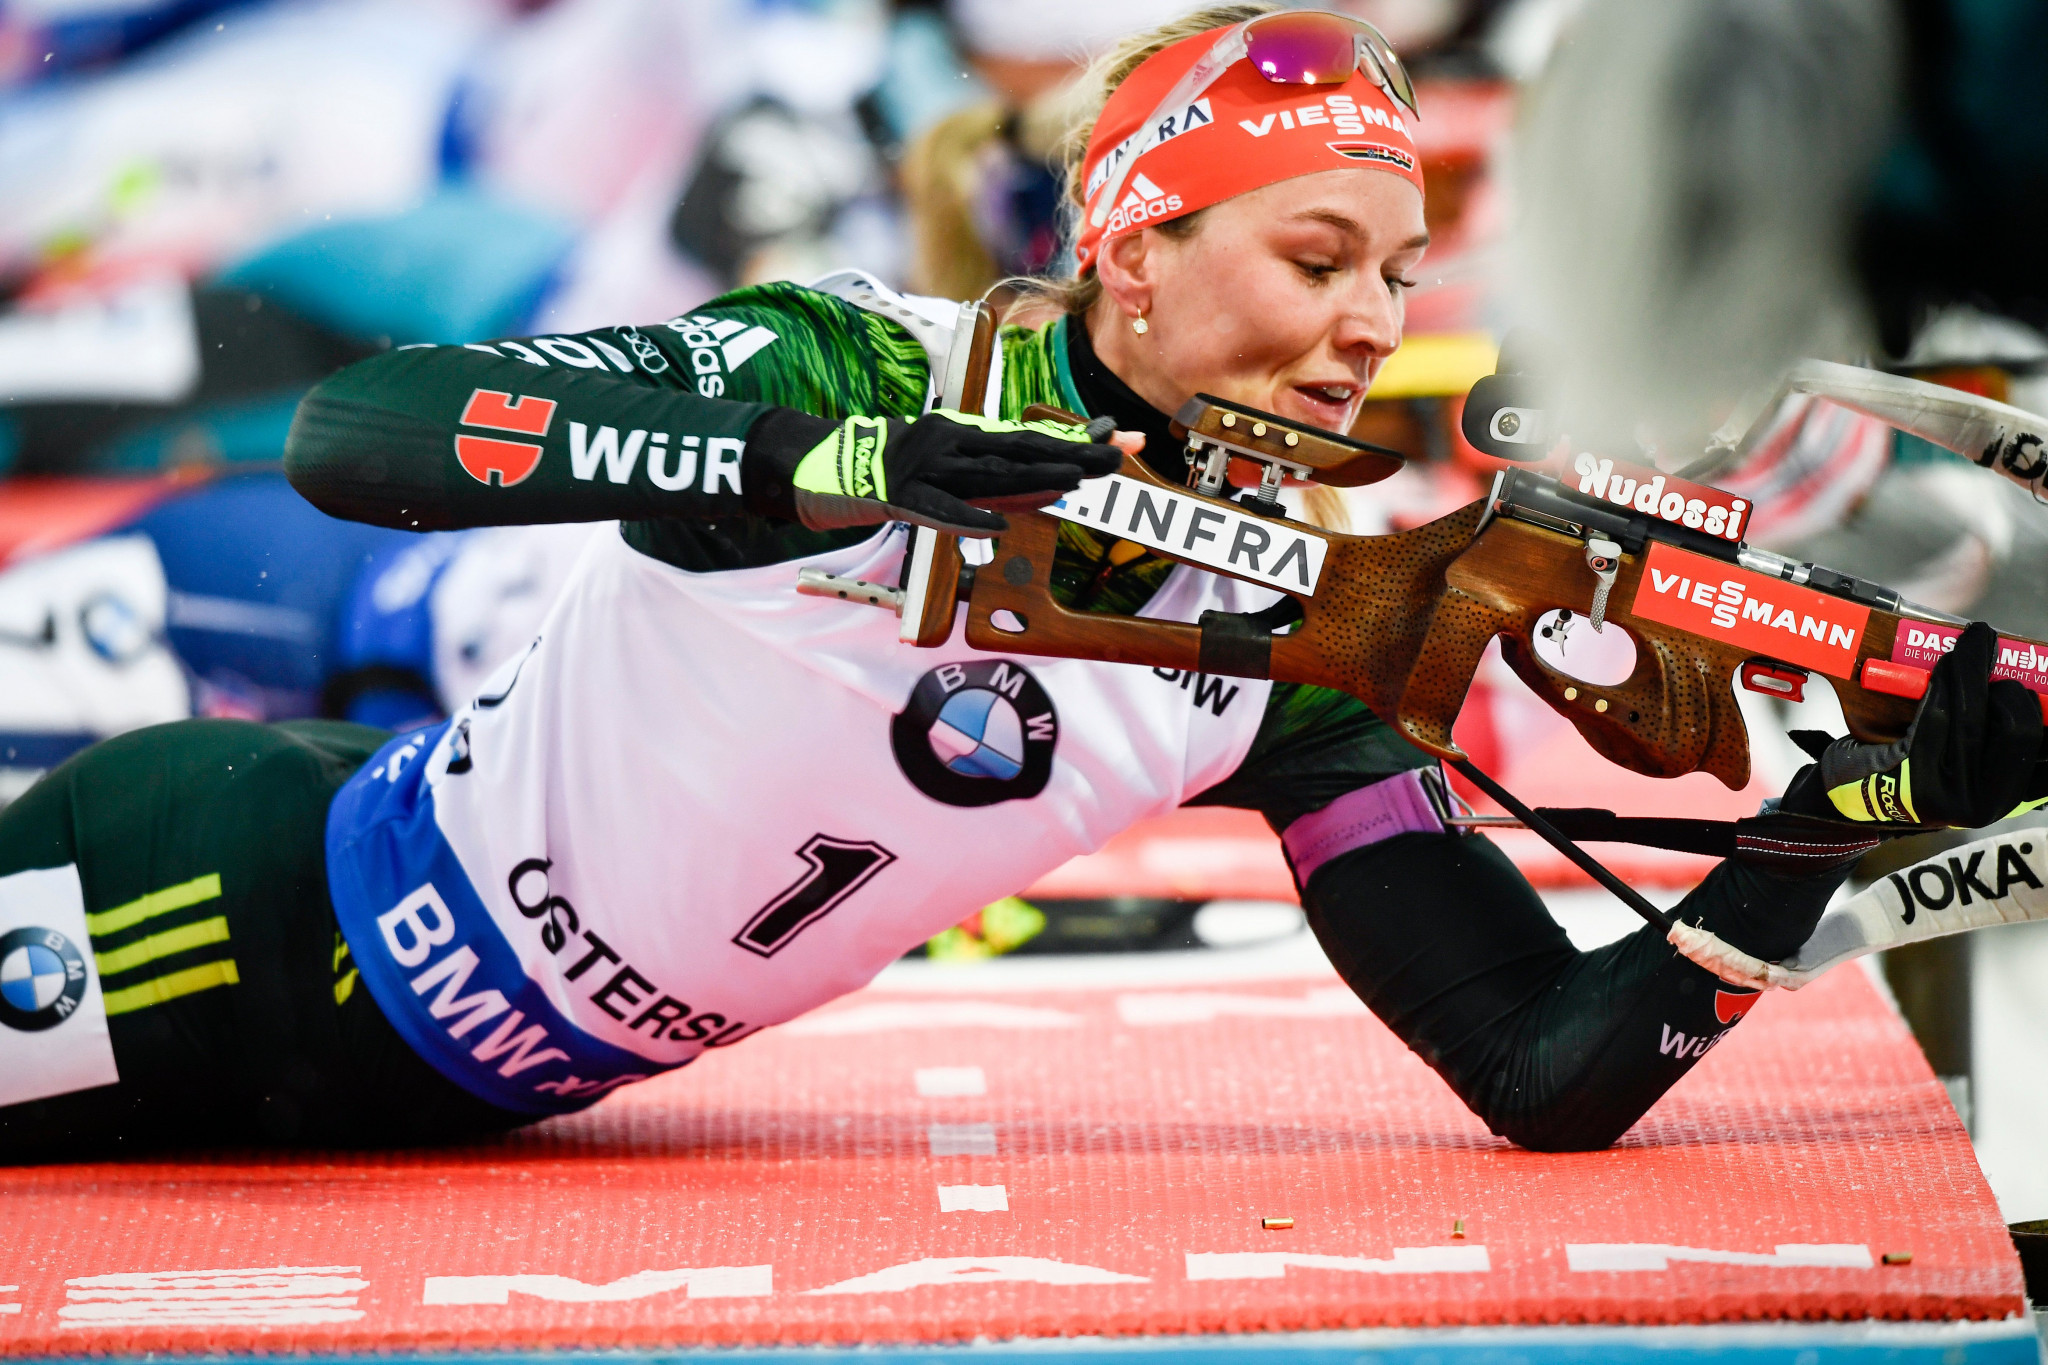 Germany's Denise Herrmann secured her second straight victory in Östersund by winning the women's pursuit ©Getty Images